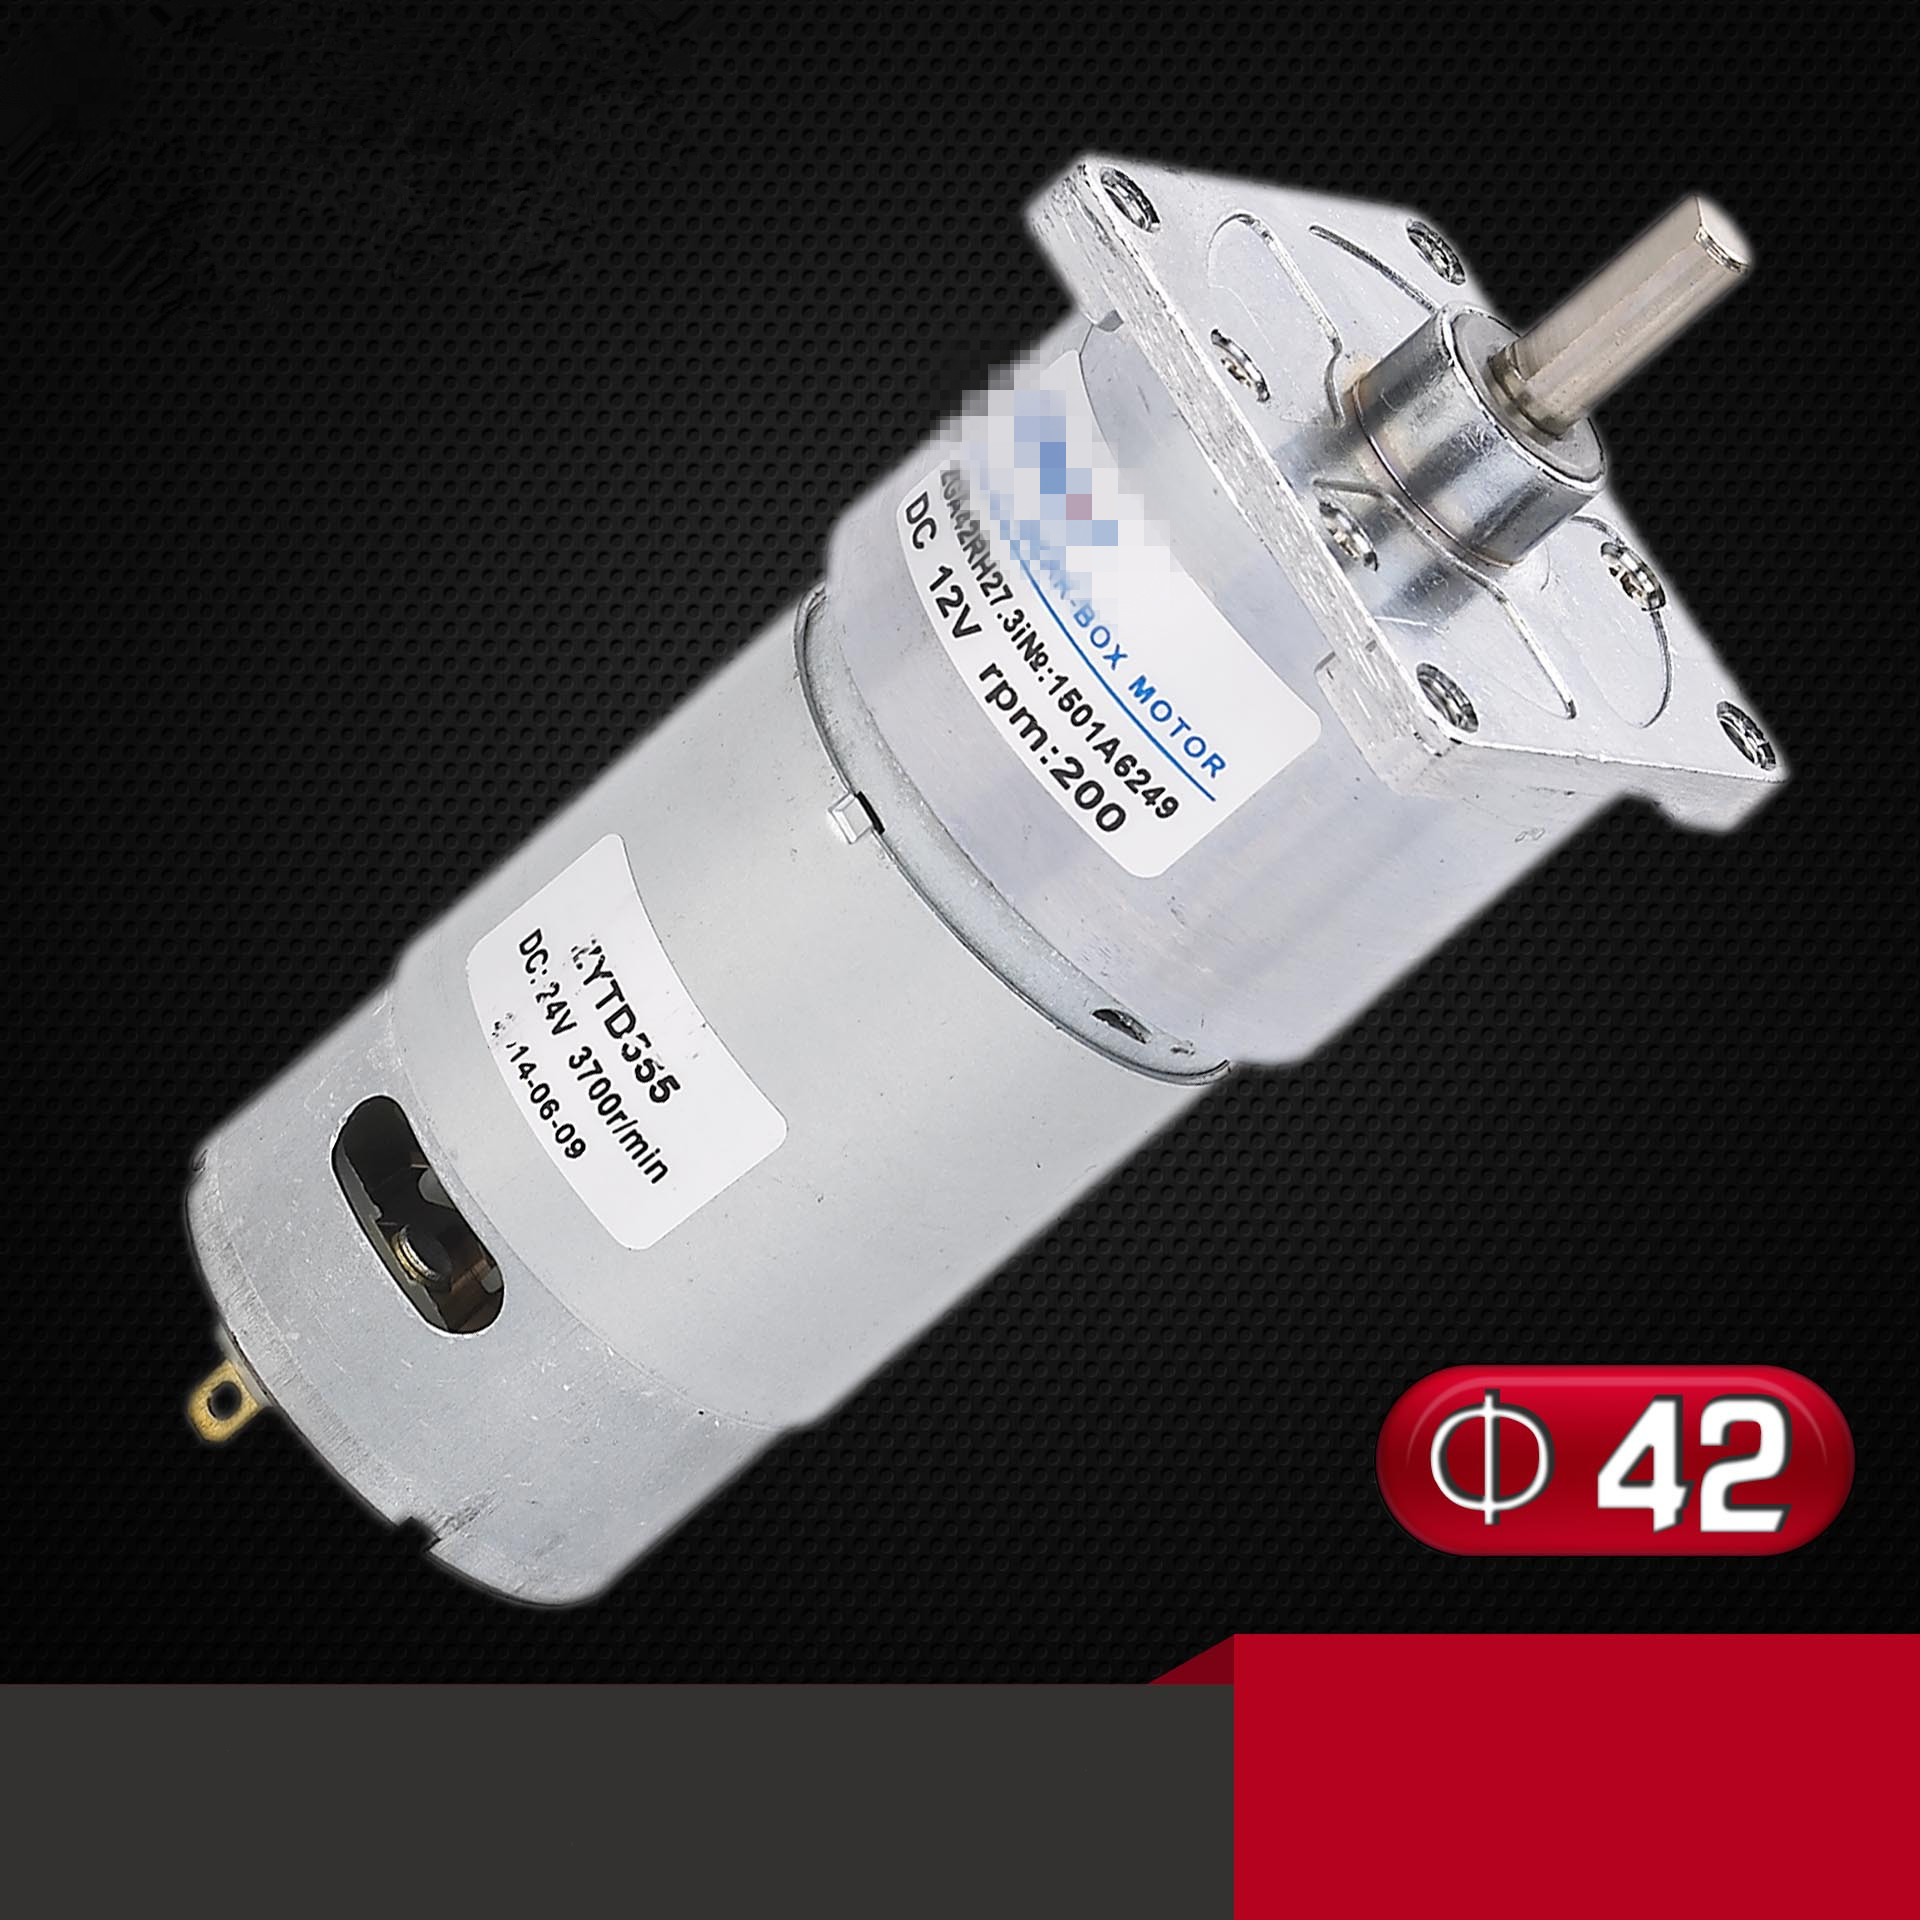 цена на ZGA42FH DC Geared Motor 42mm DIA Square Clamshell DC 12V 24V Output Shaft Center 10RPM-750RPM